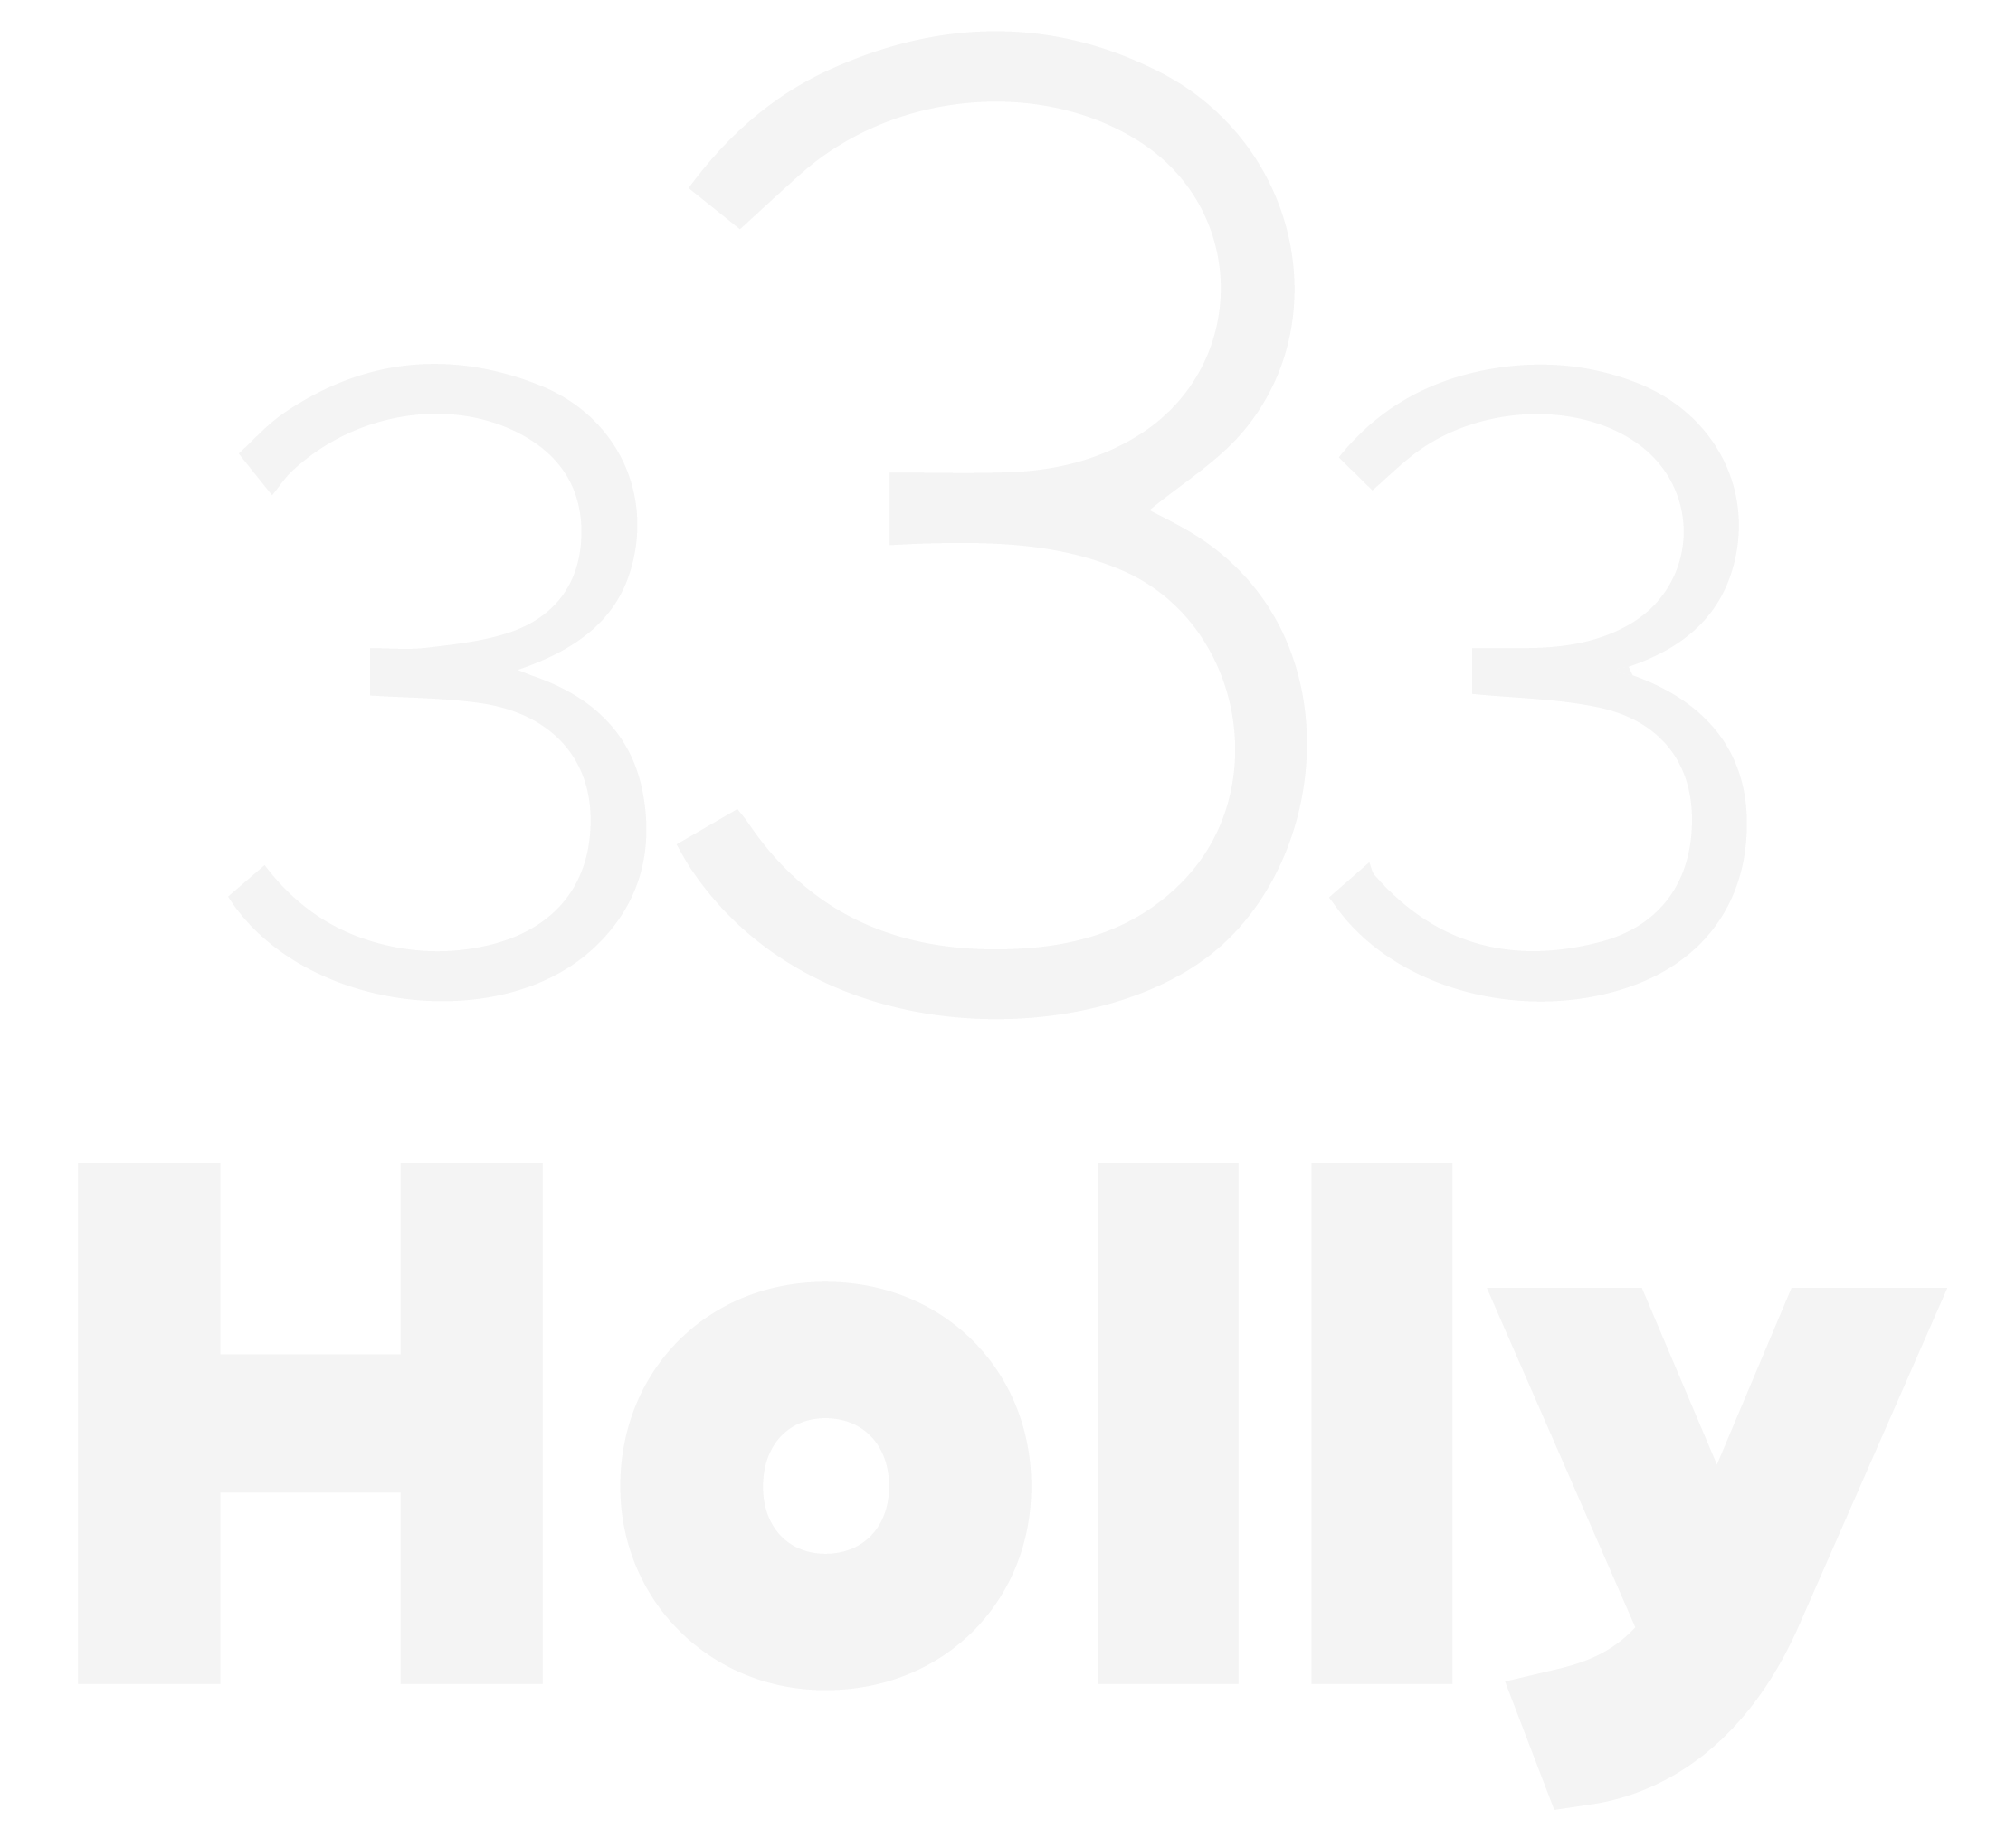 333 Holly Logo